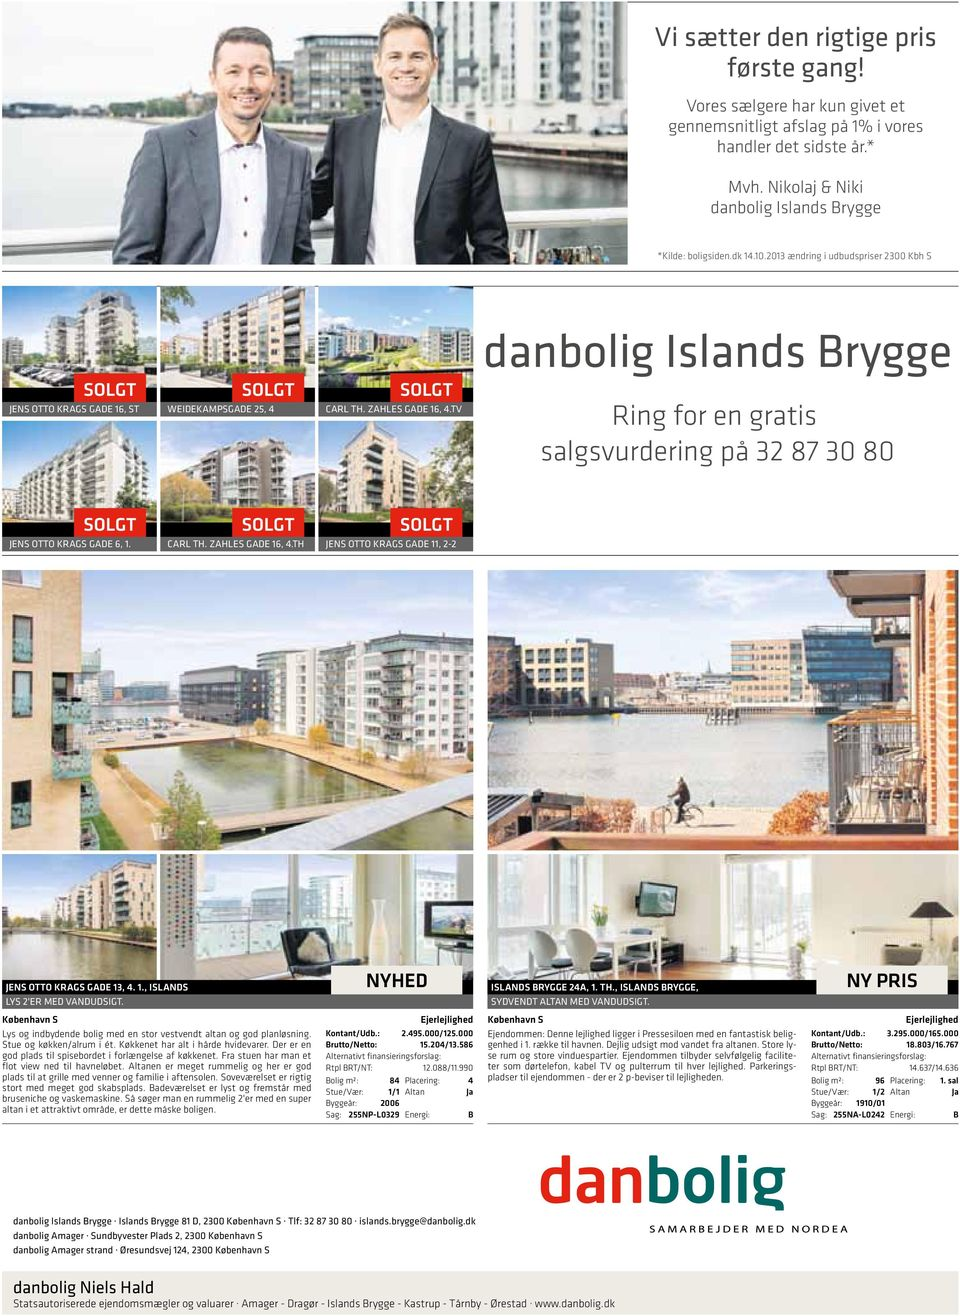 TV danbolig Islands Brygge Ring for en gratis salgsvurdering på 32 87 30 80 SOLGT JENS OTTO KRAGS GADE 6, 1. SOLGT CARL TH. ZAHLES GADE 16, 4.